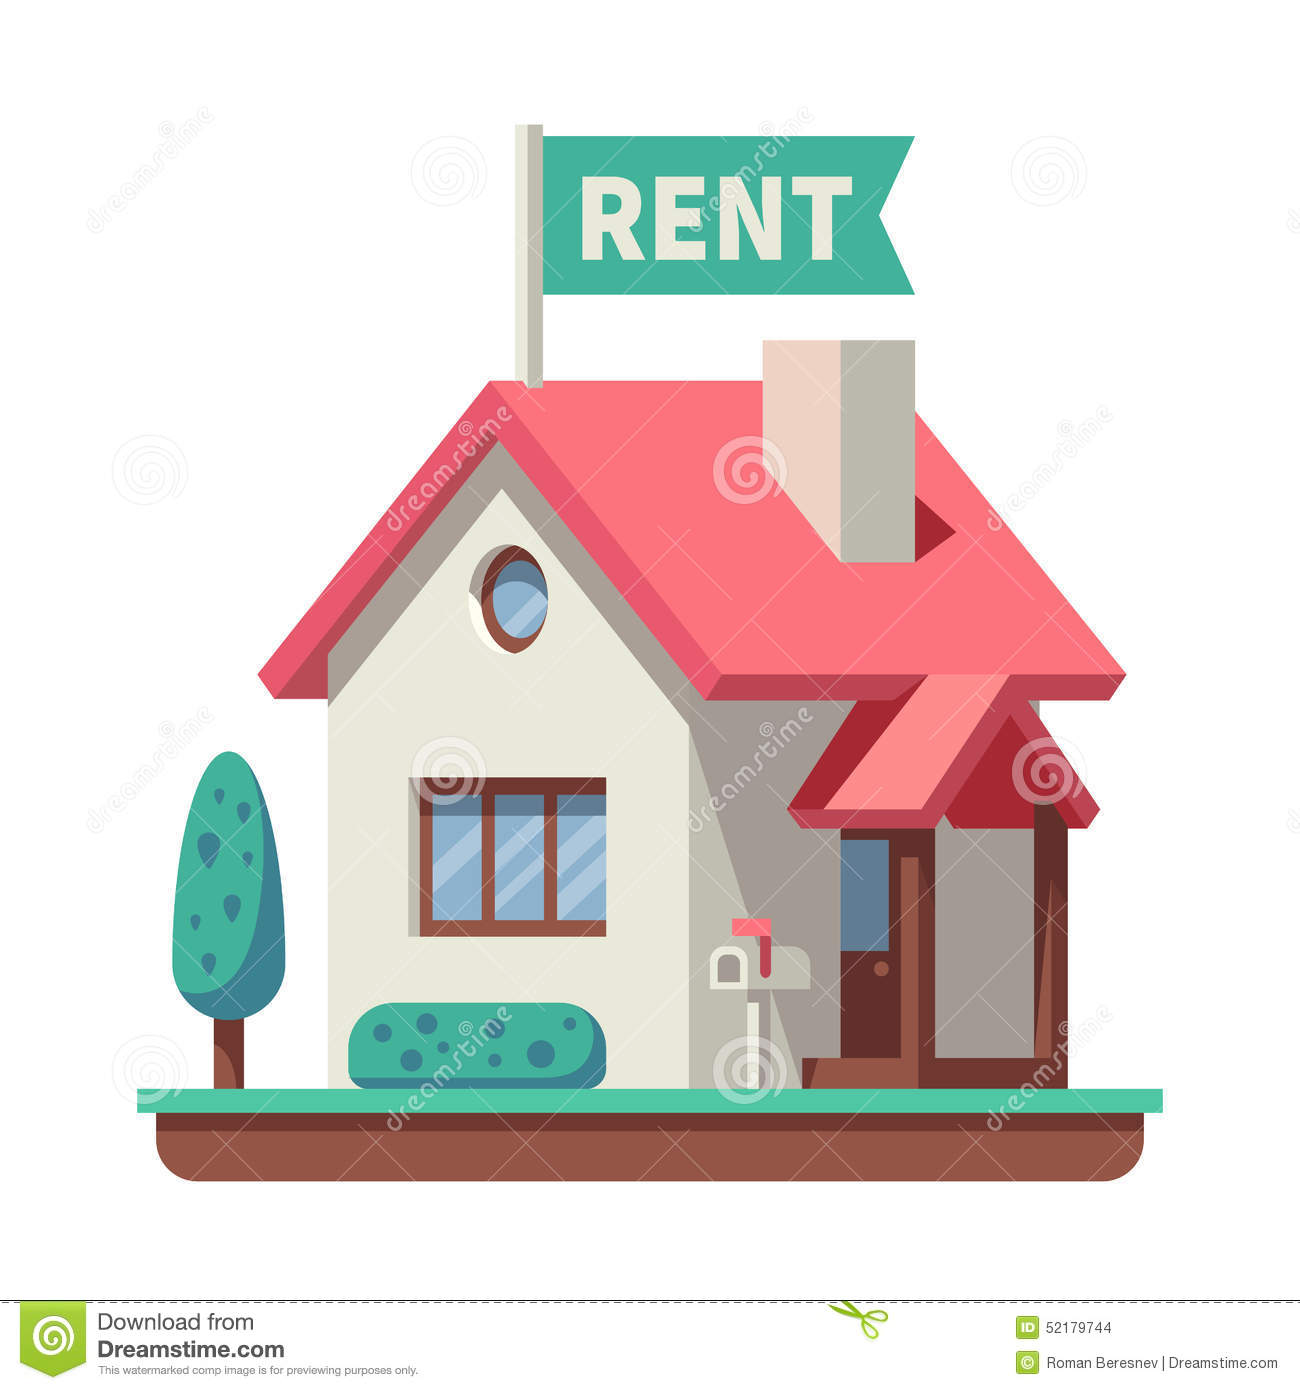 Homes For Rent Apartment: House For Rent Stock Vector. Illustration Of Graphic